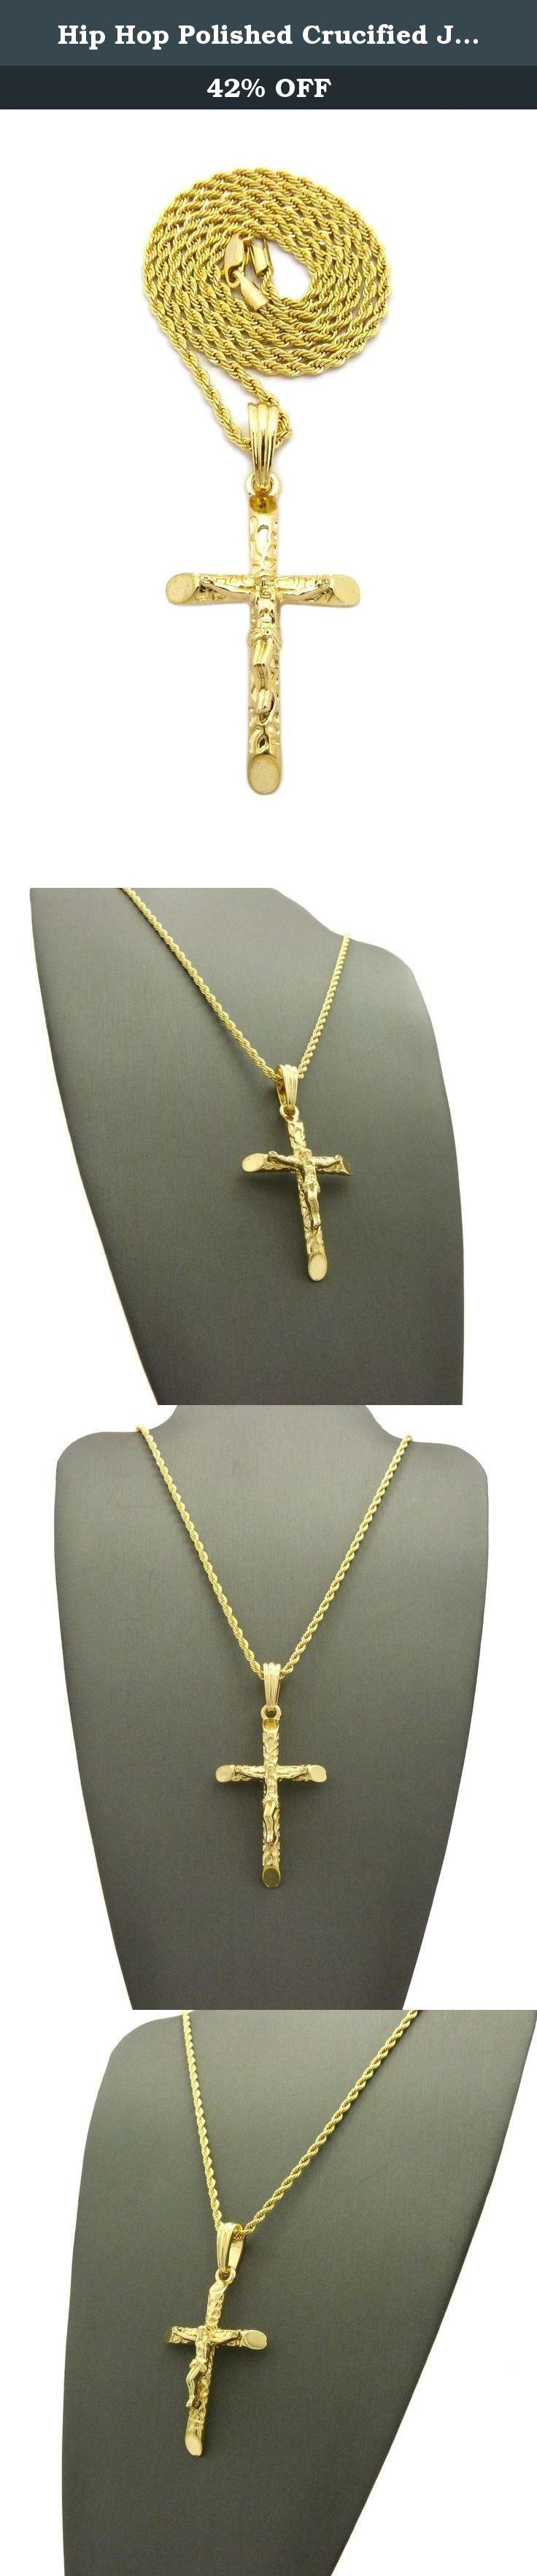 """Hip Hop Polished Crucified Jesus on Cross Pendant 24"""" Various Chain Necklace in Gold Color Plated (2mm 24"""" Rope Chain). Hip Hop Polished Crucified Jesus on Cross Pendant 24"""" Various Chain Necklace in Gold Color Plated."""